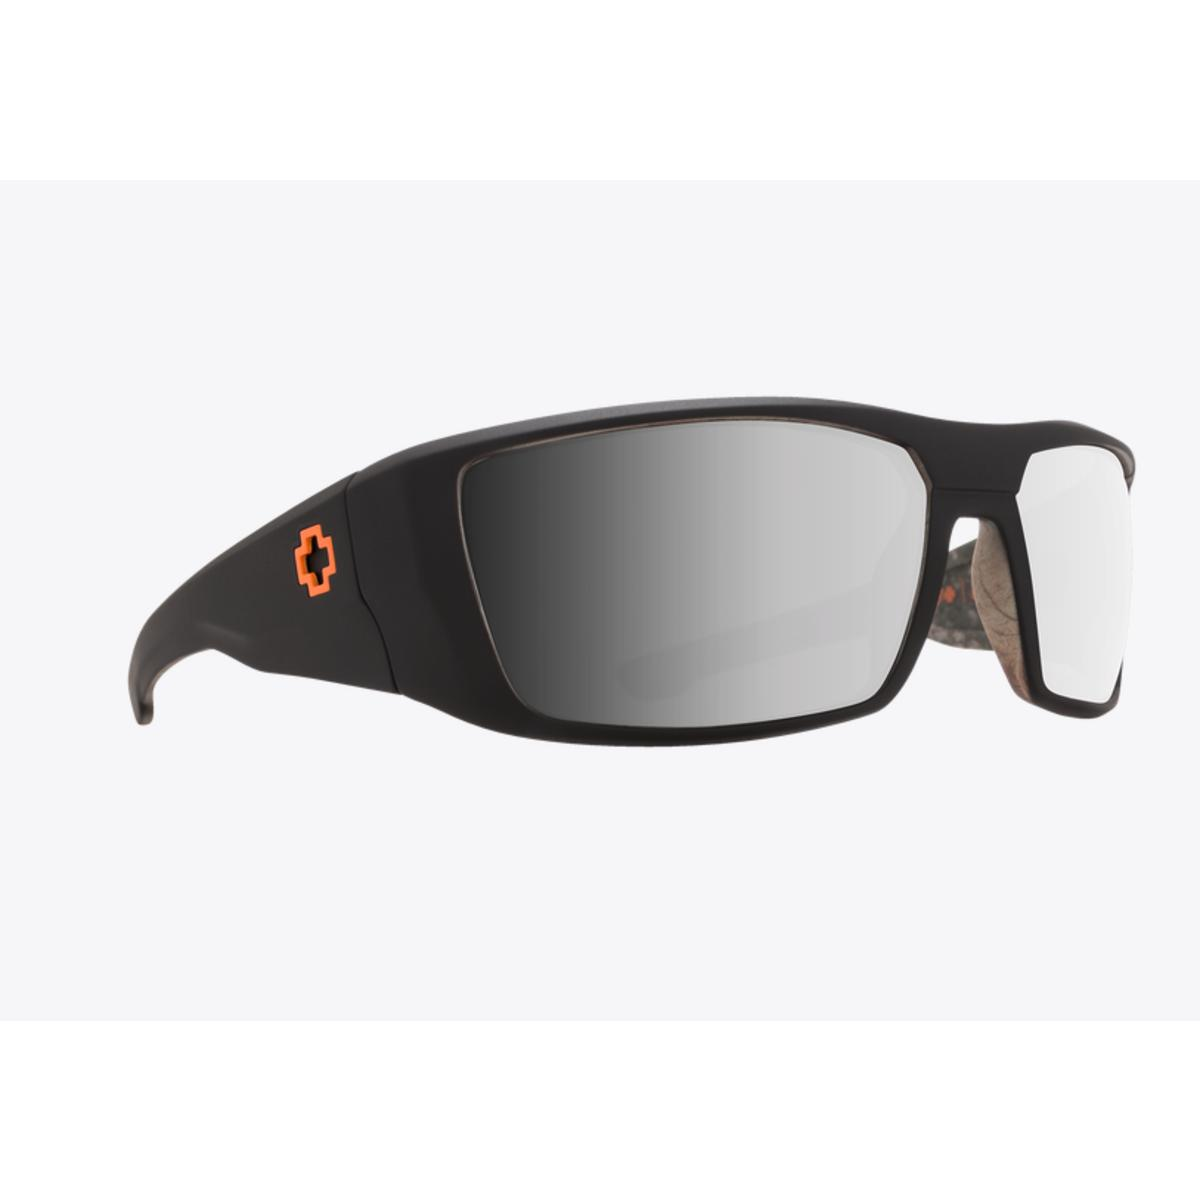 Spy Dirk Men's Sunglasses